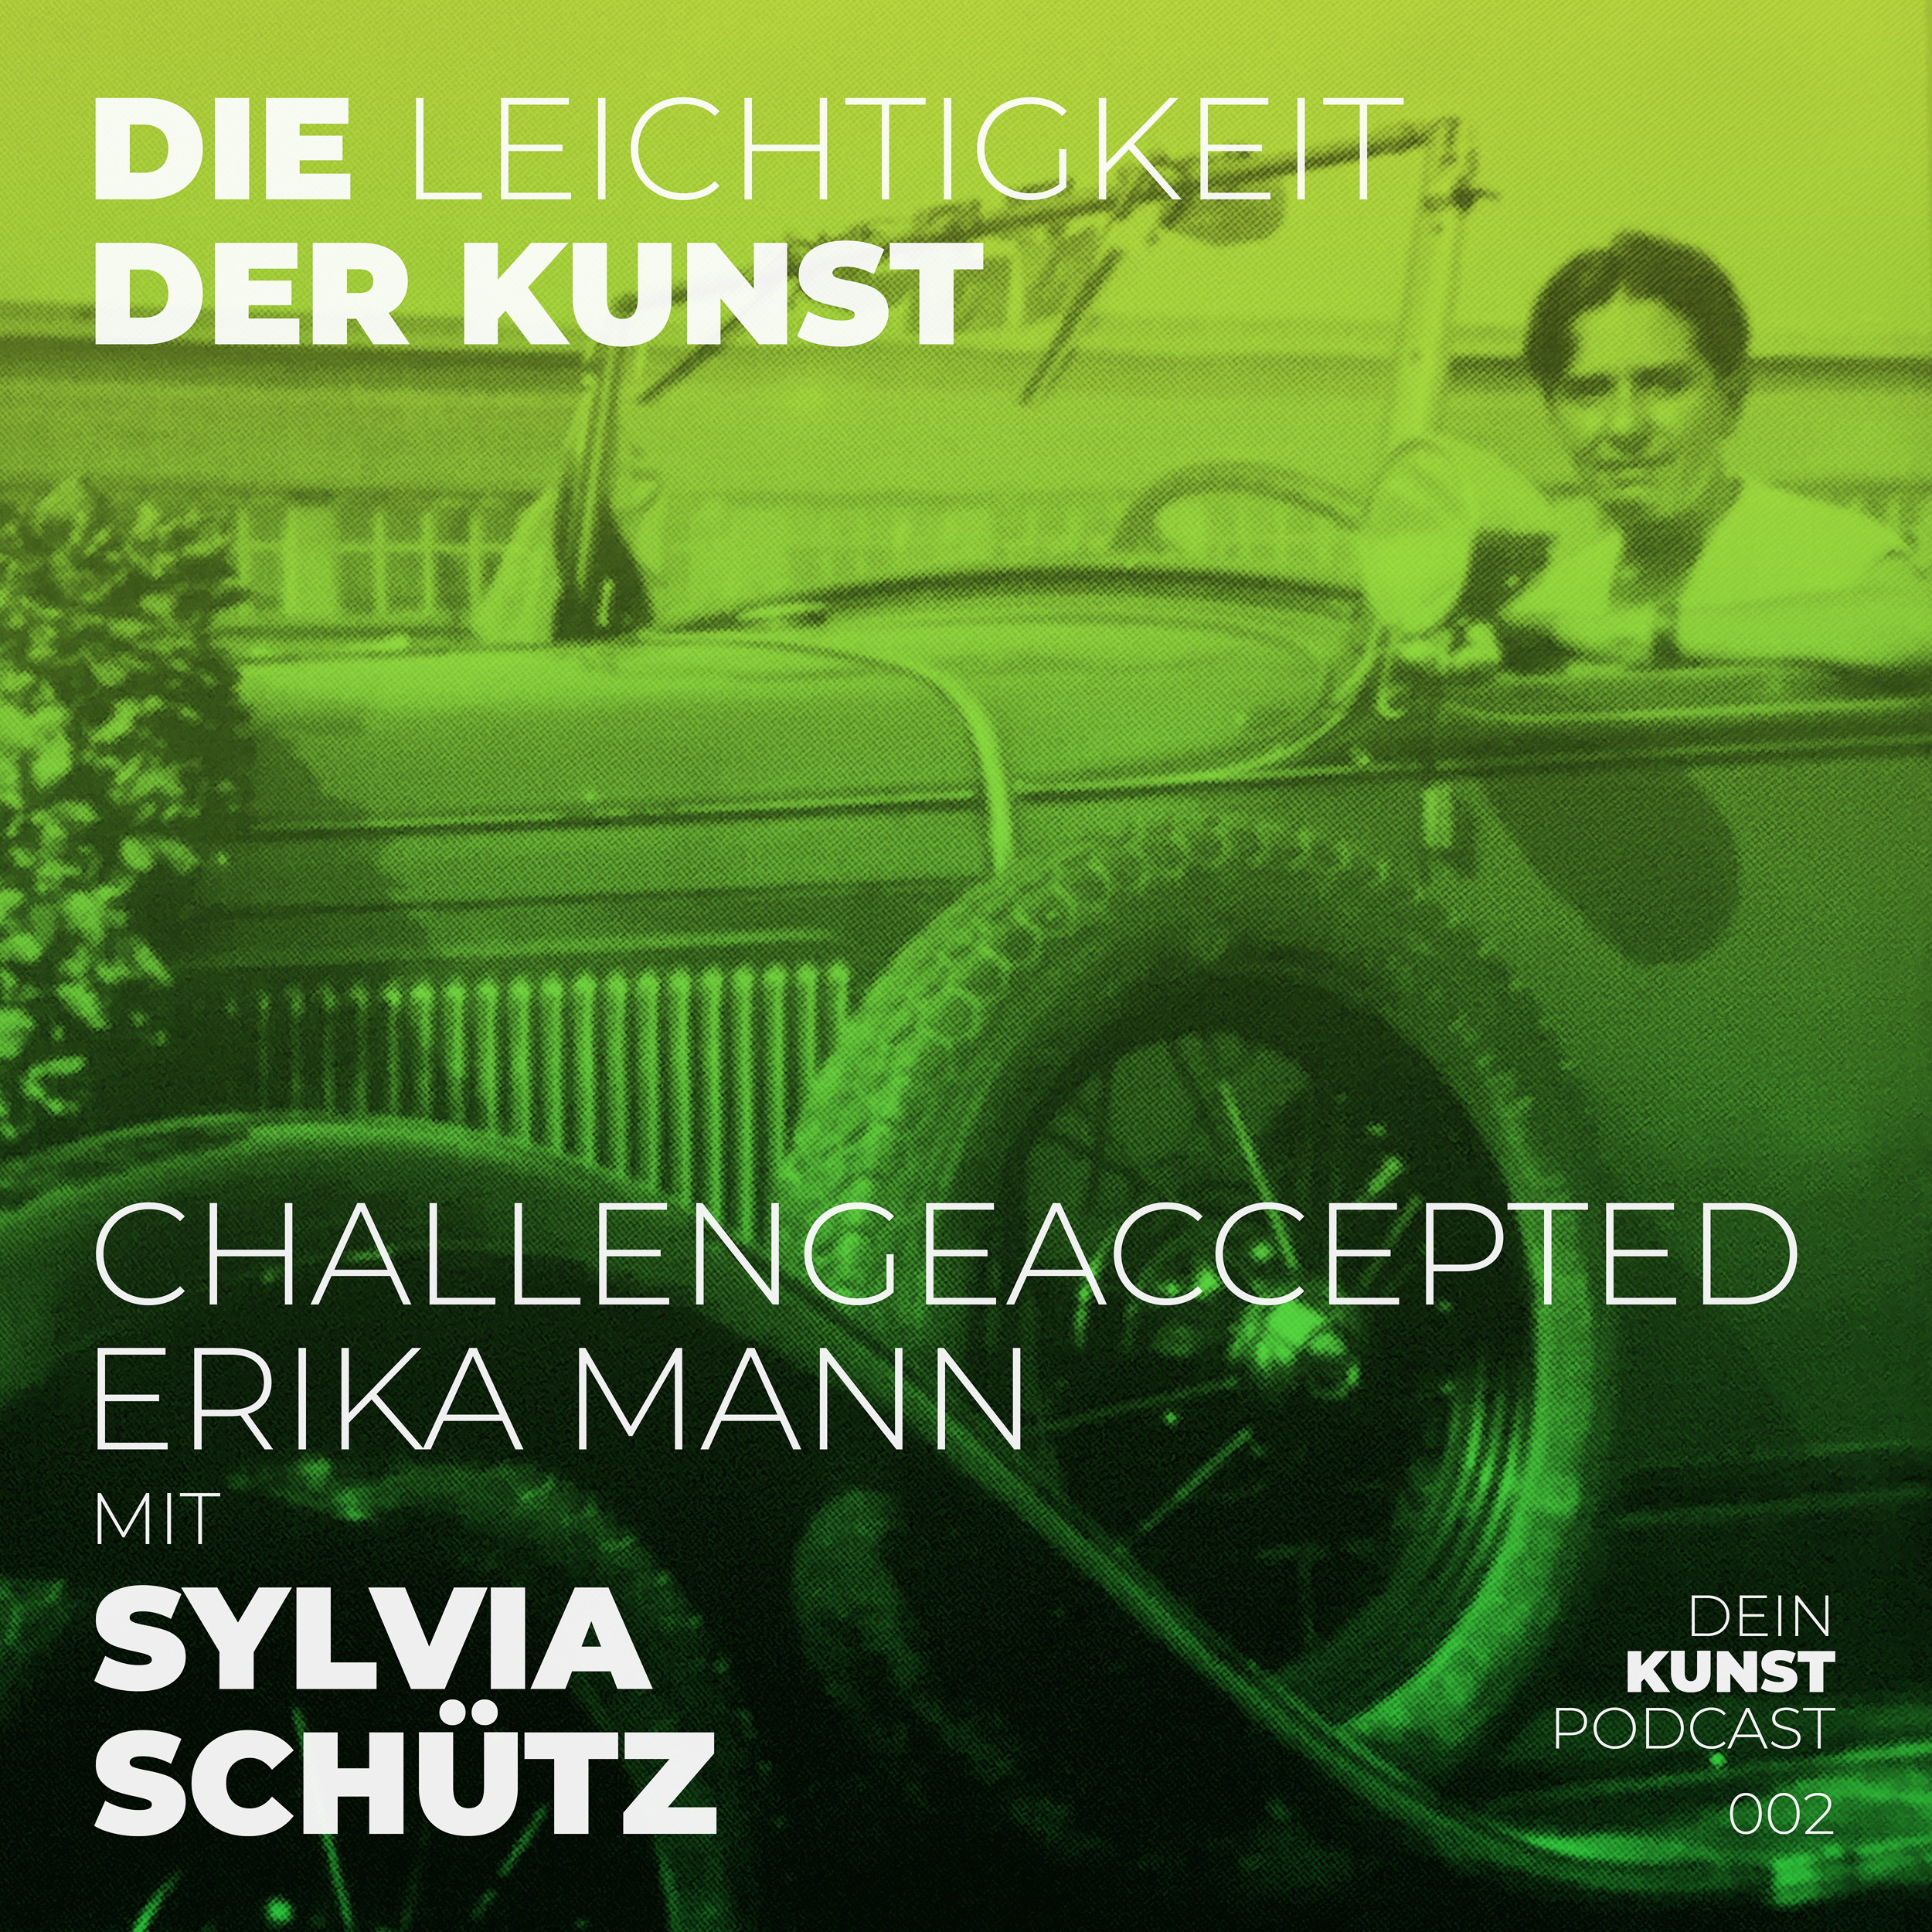 Challenge accepted / Erika Mann